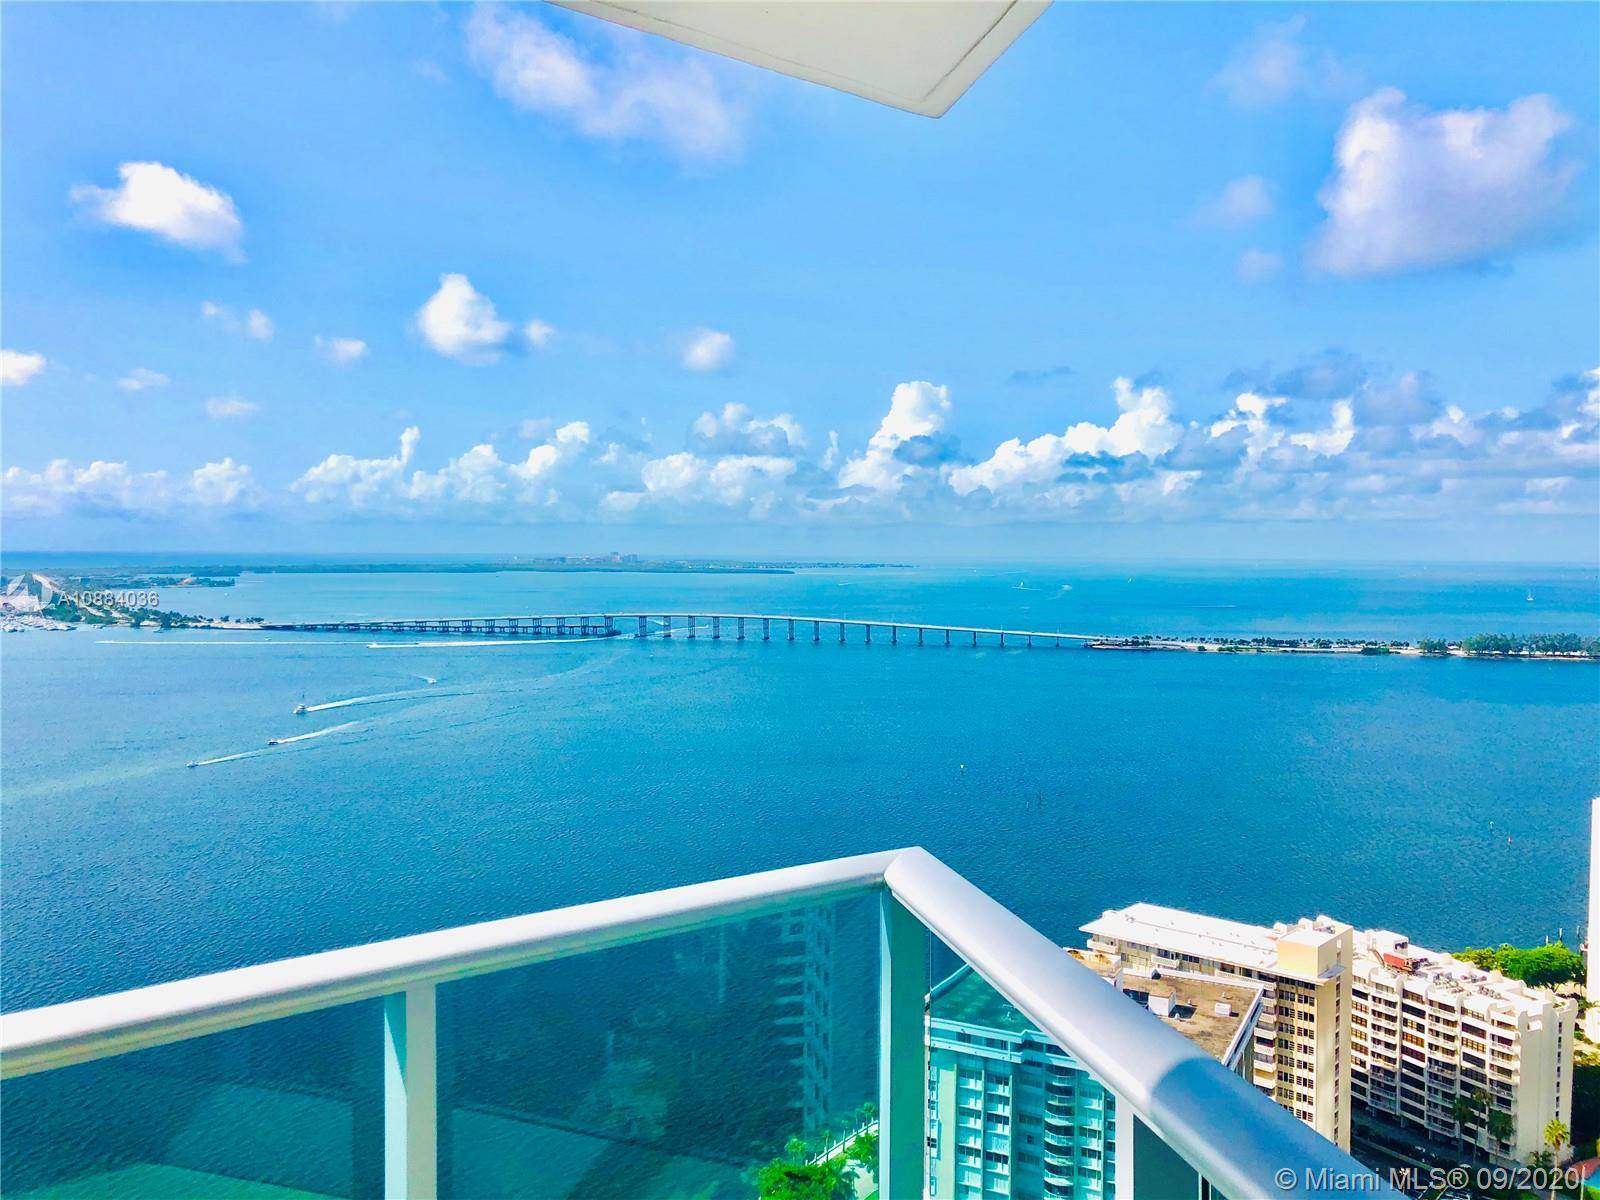 PRICE REDUCED. This is the lowest price in the building for a 4-bedrooms. Be the new owner of this great unit at the prestigious Jade Residence at Brickell with 4-bedrooms & 4.5 baths. South-east corner with spectacular direct water views and city views.  